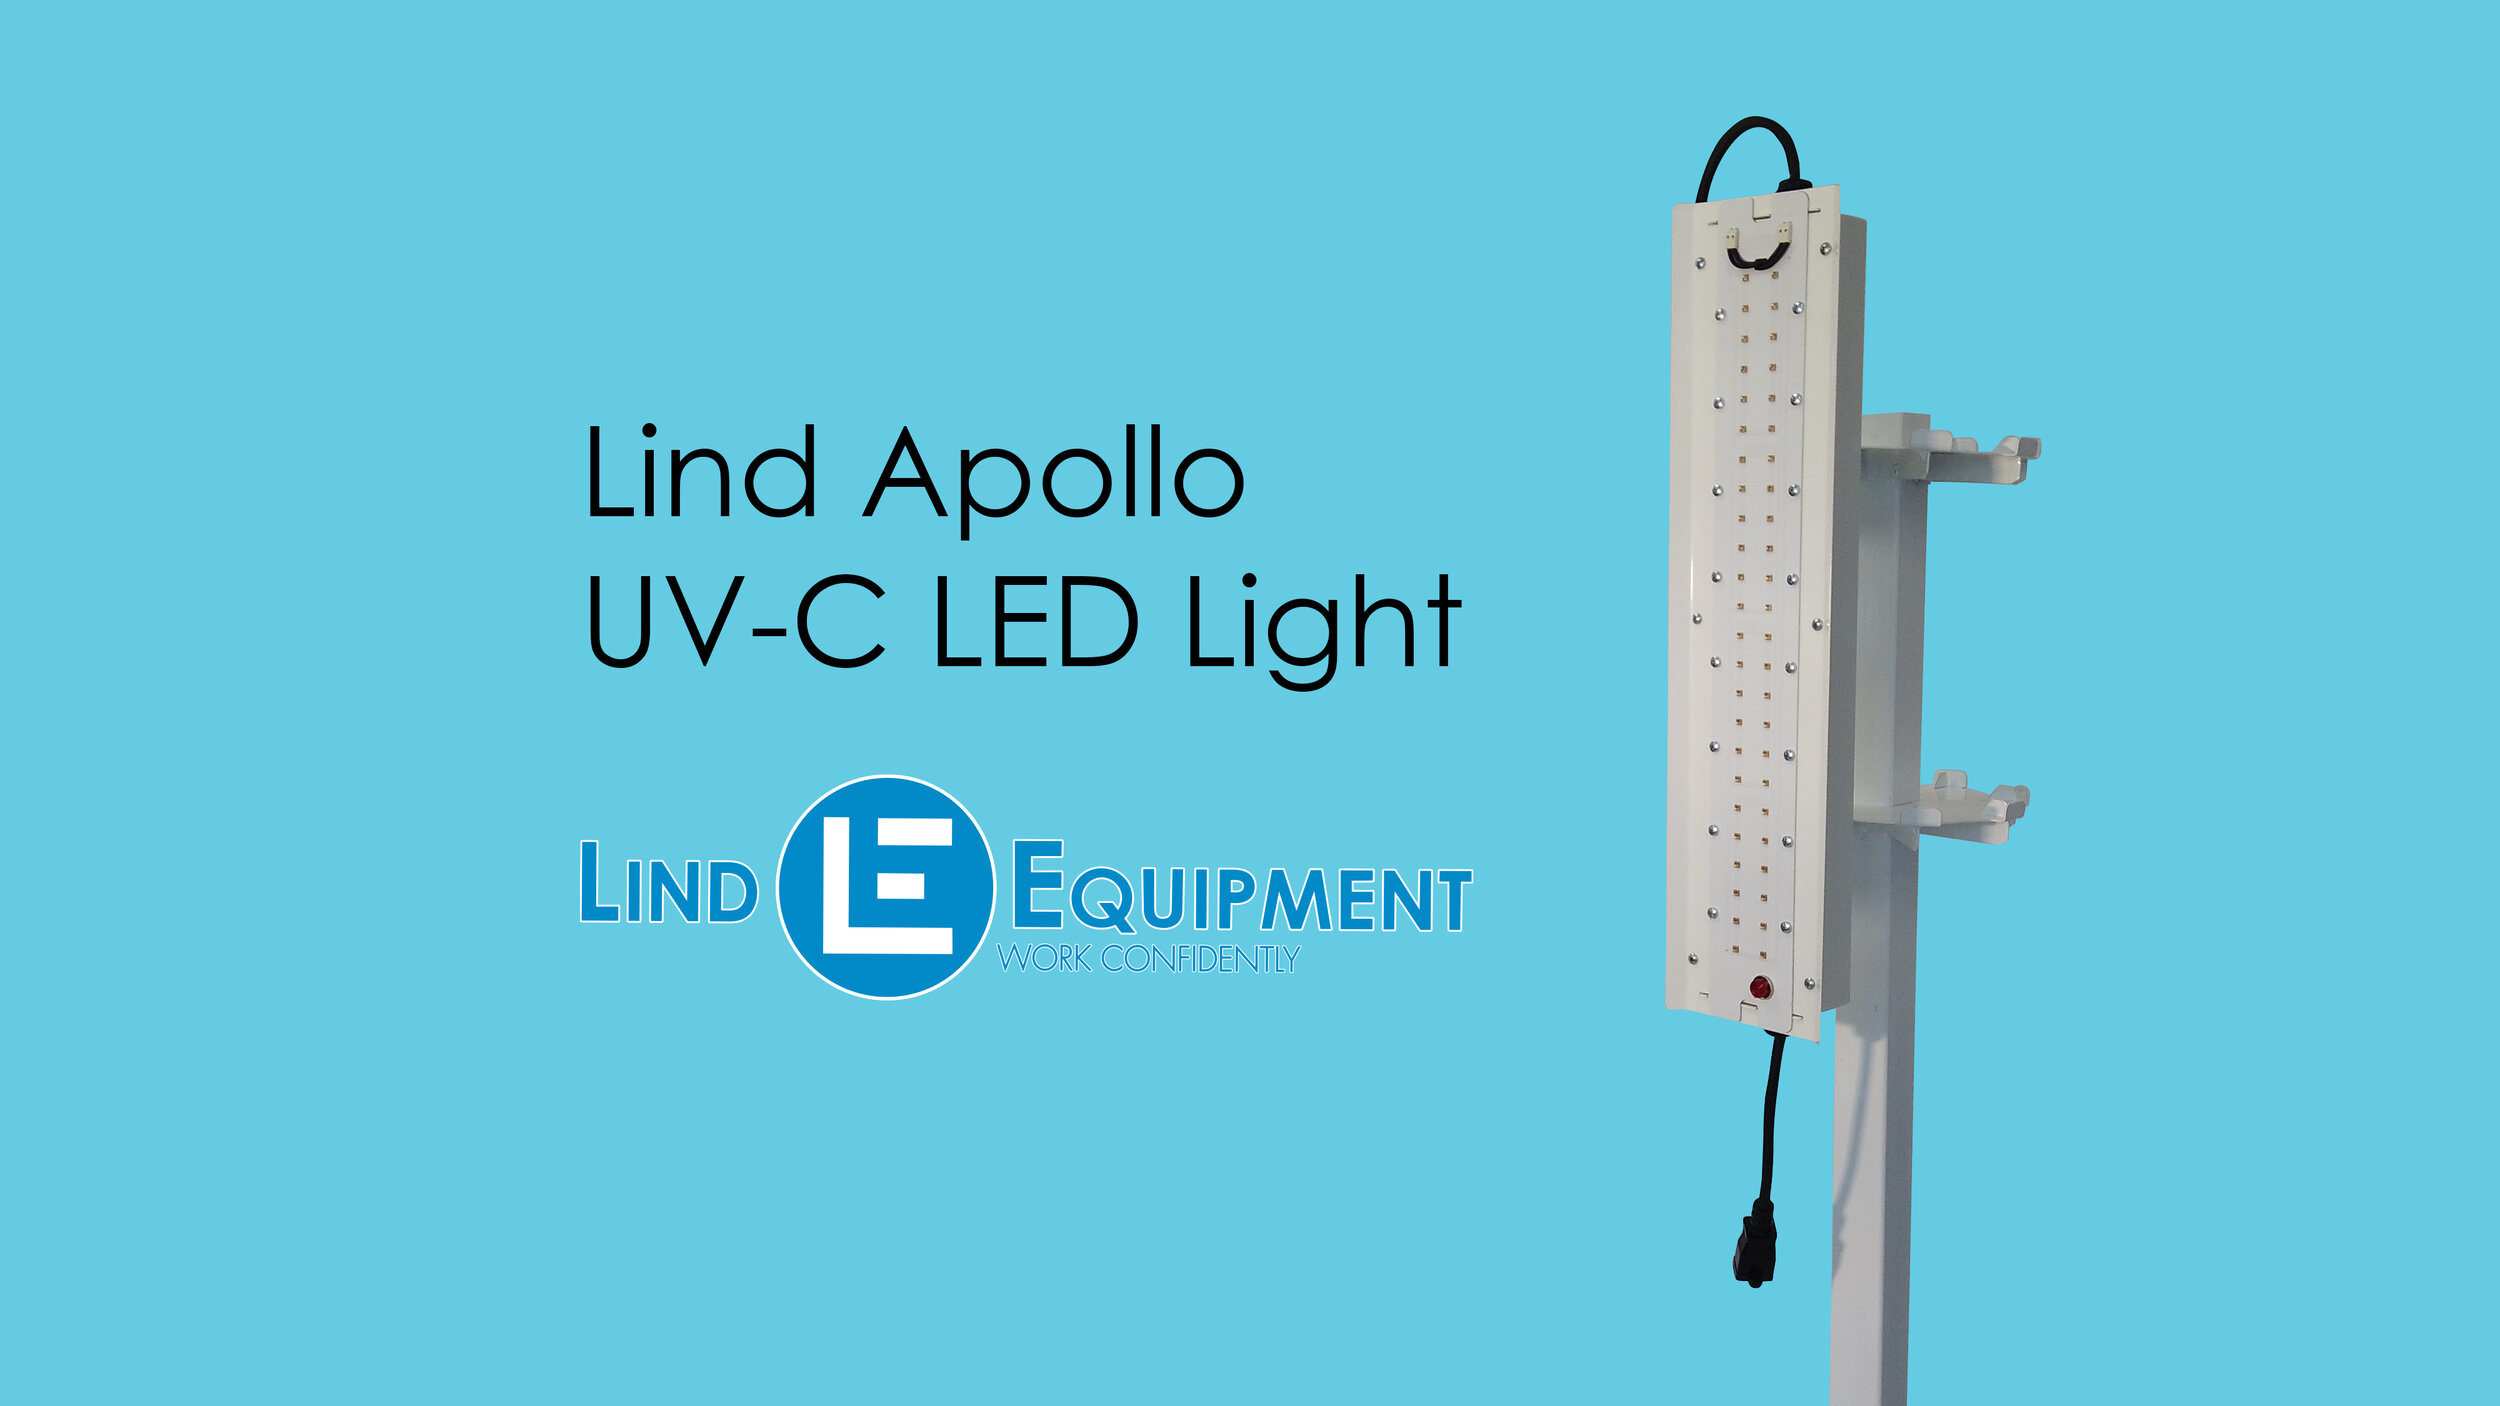 Apollo UV-C LED light by Lind